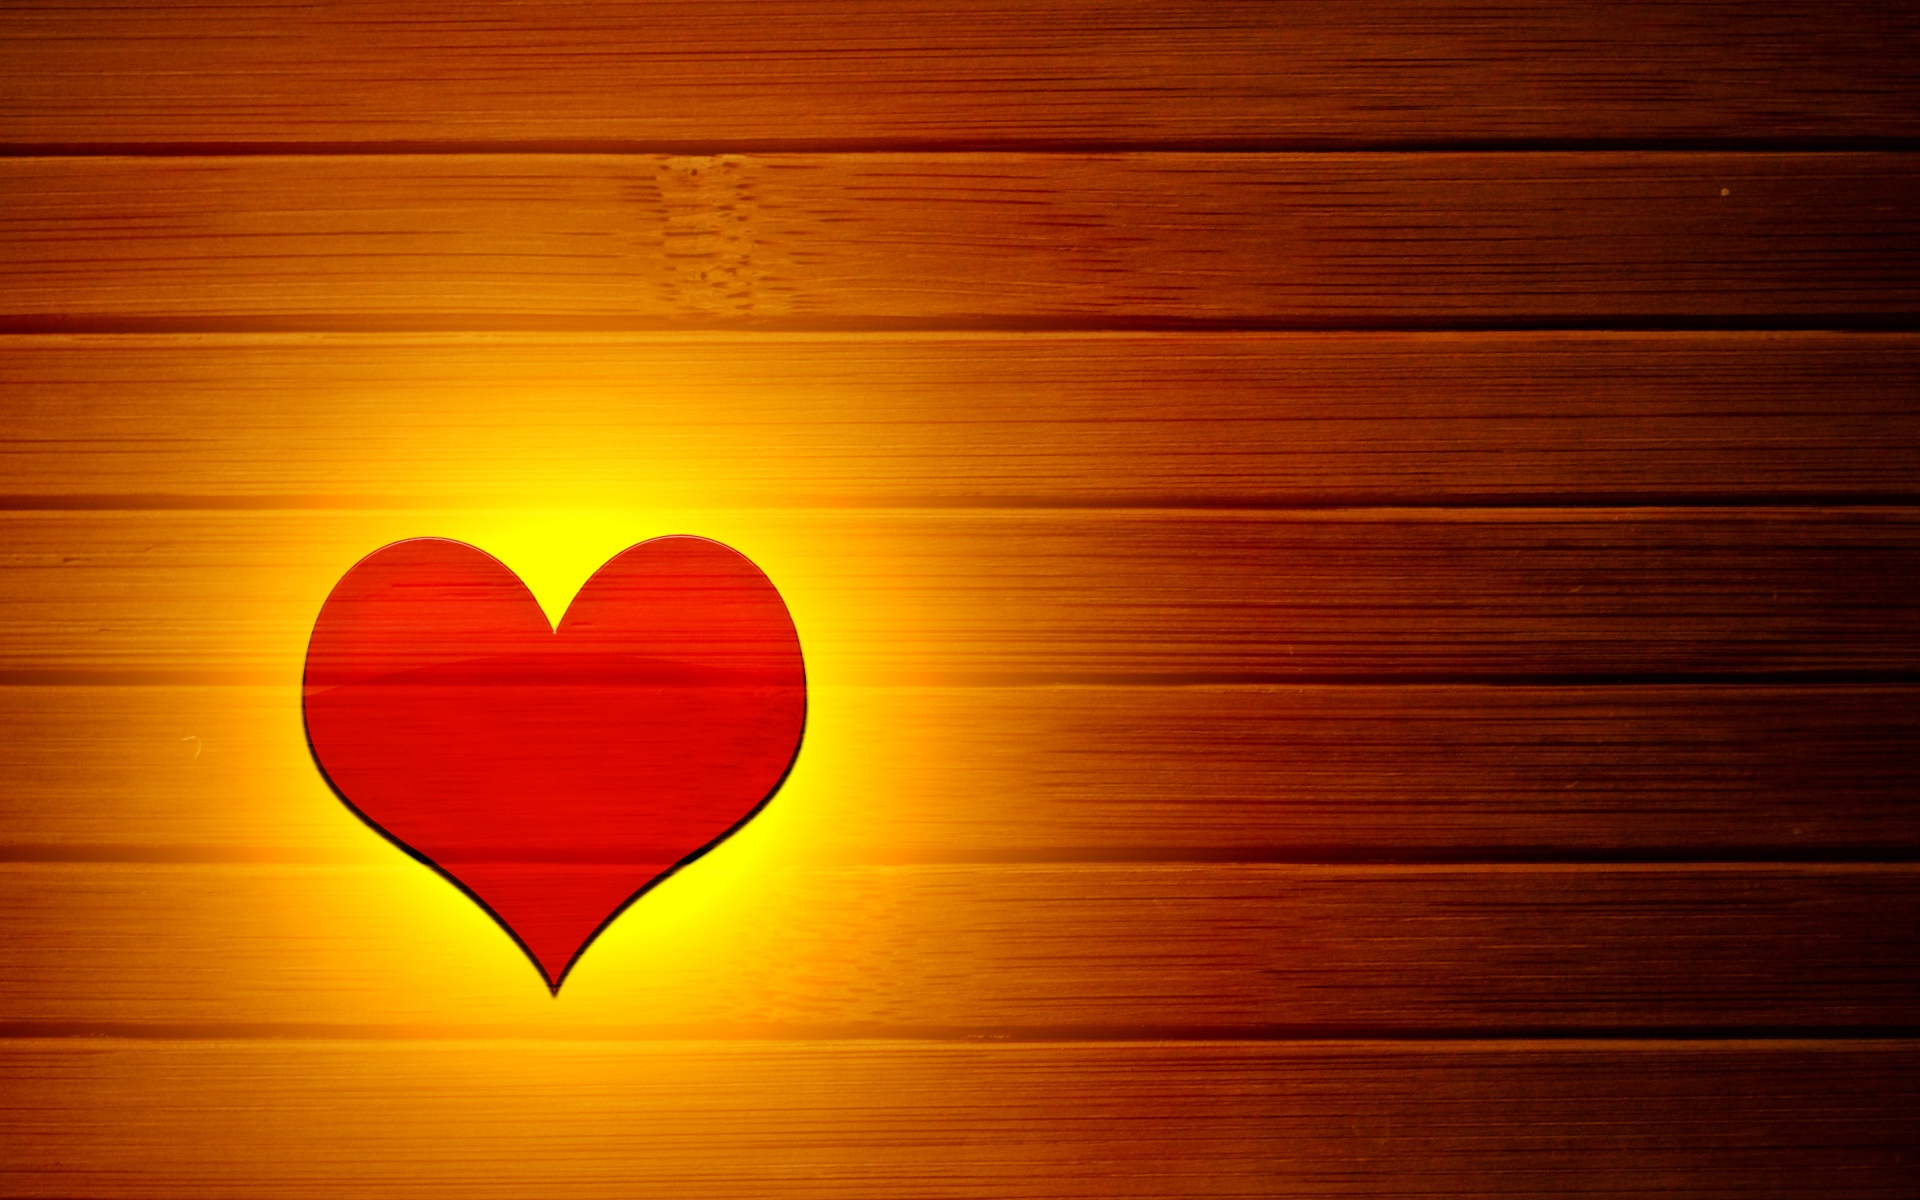 love backgrounds wallpaper 1920x1200 69669